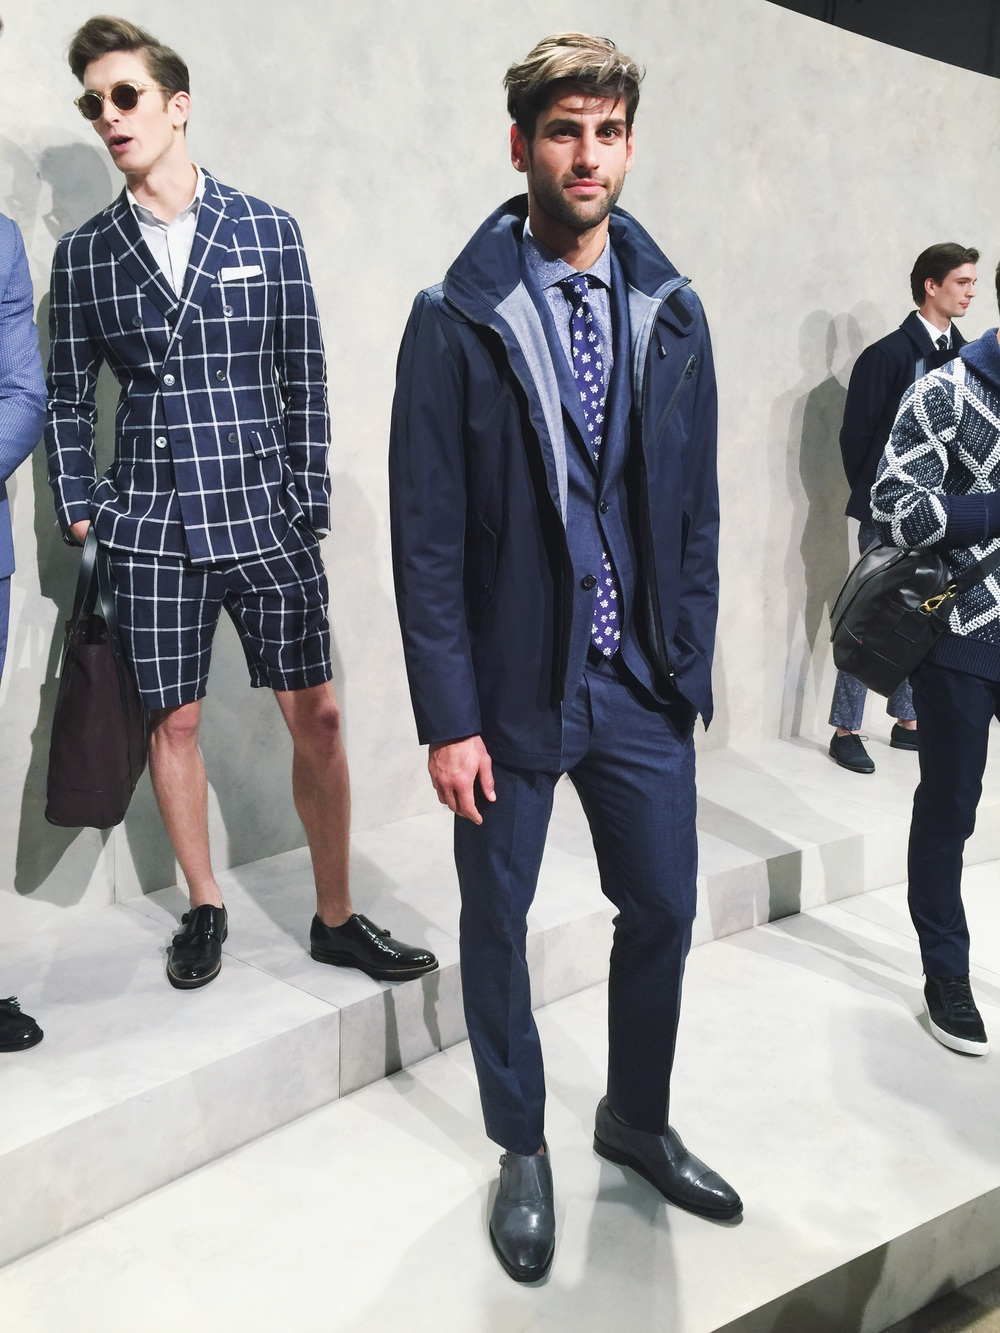 Blue, blue, more blue and grey for the men this Spring. And...a shorts suit...